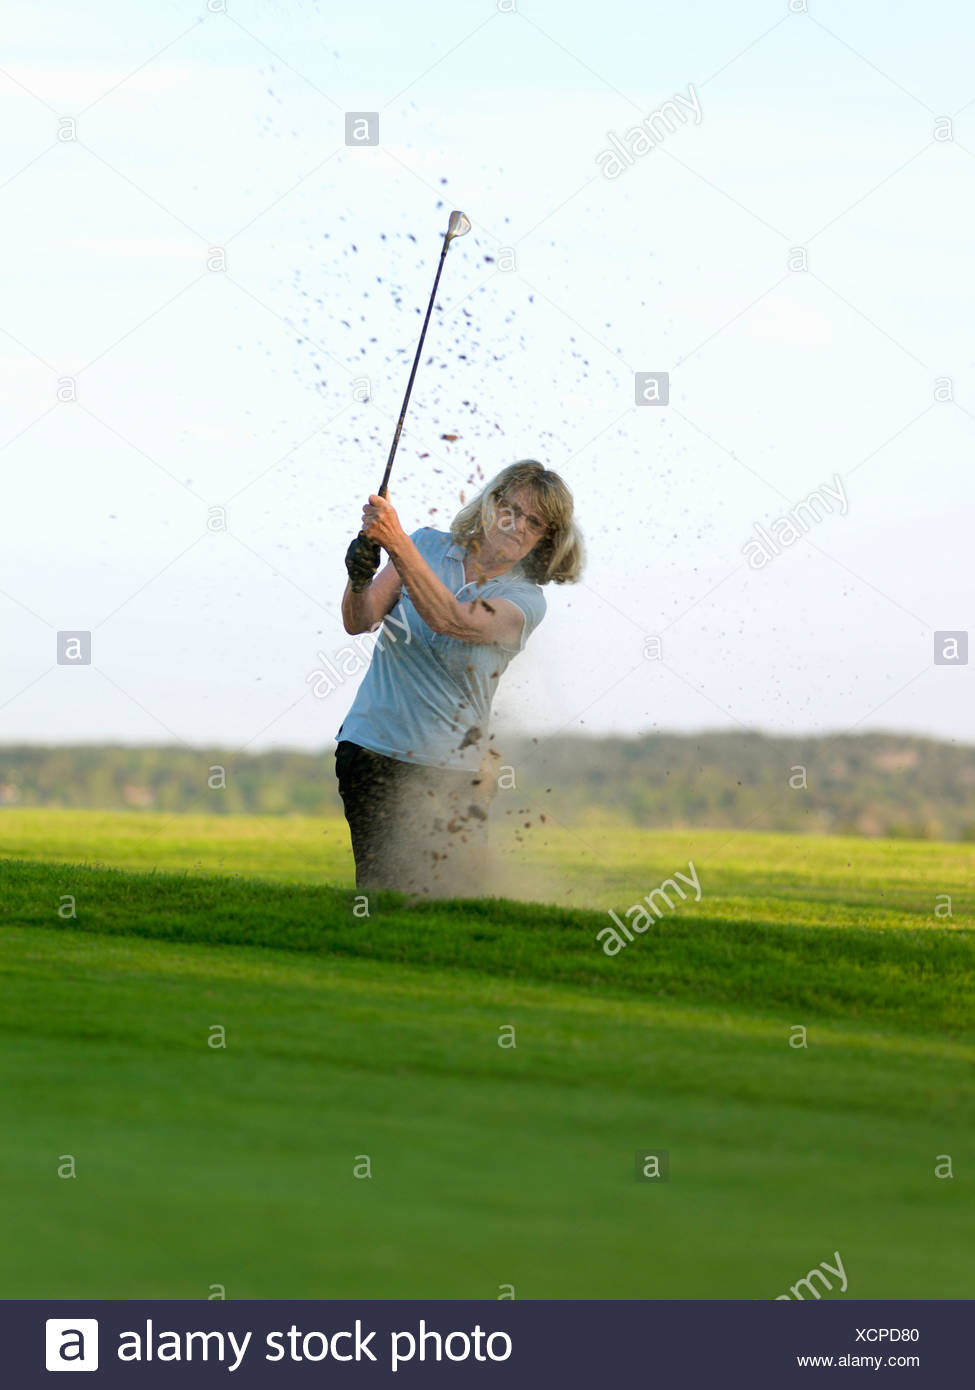 Woman in golf bunker - Stock Image